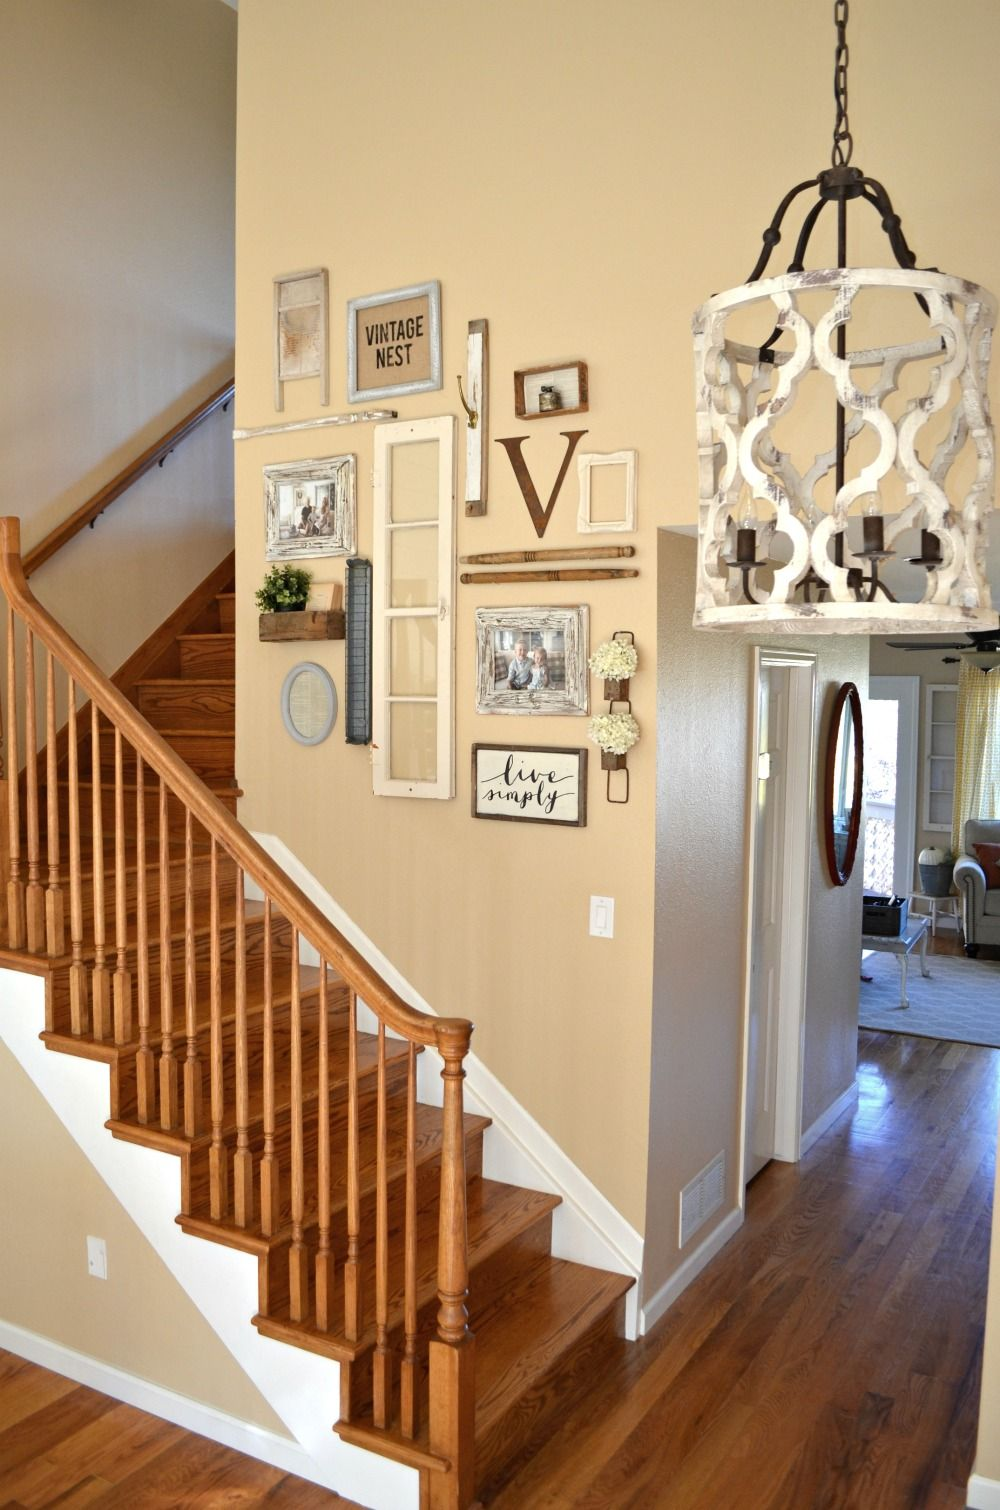 Staircase Update & Painting Options | Gallery wall, Staircases and Walls